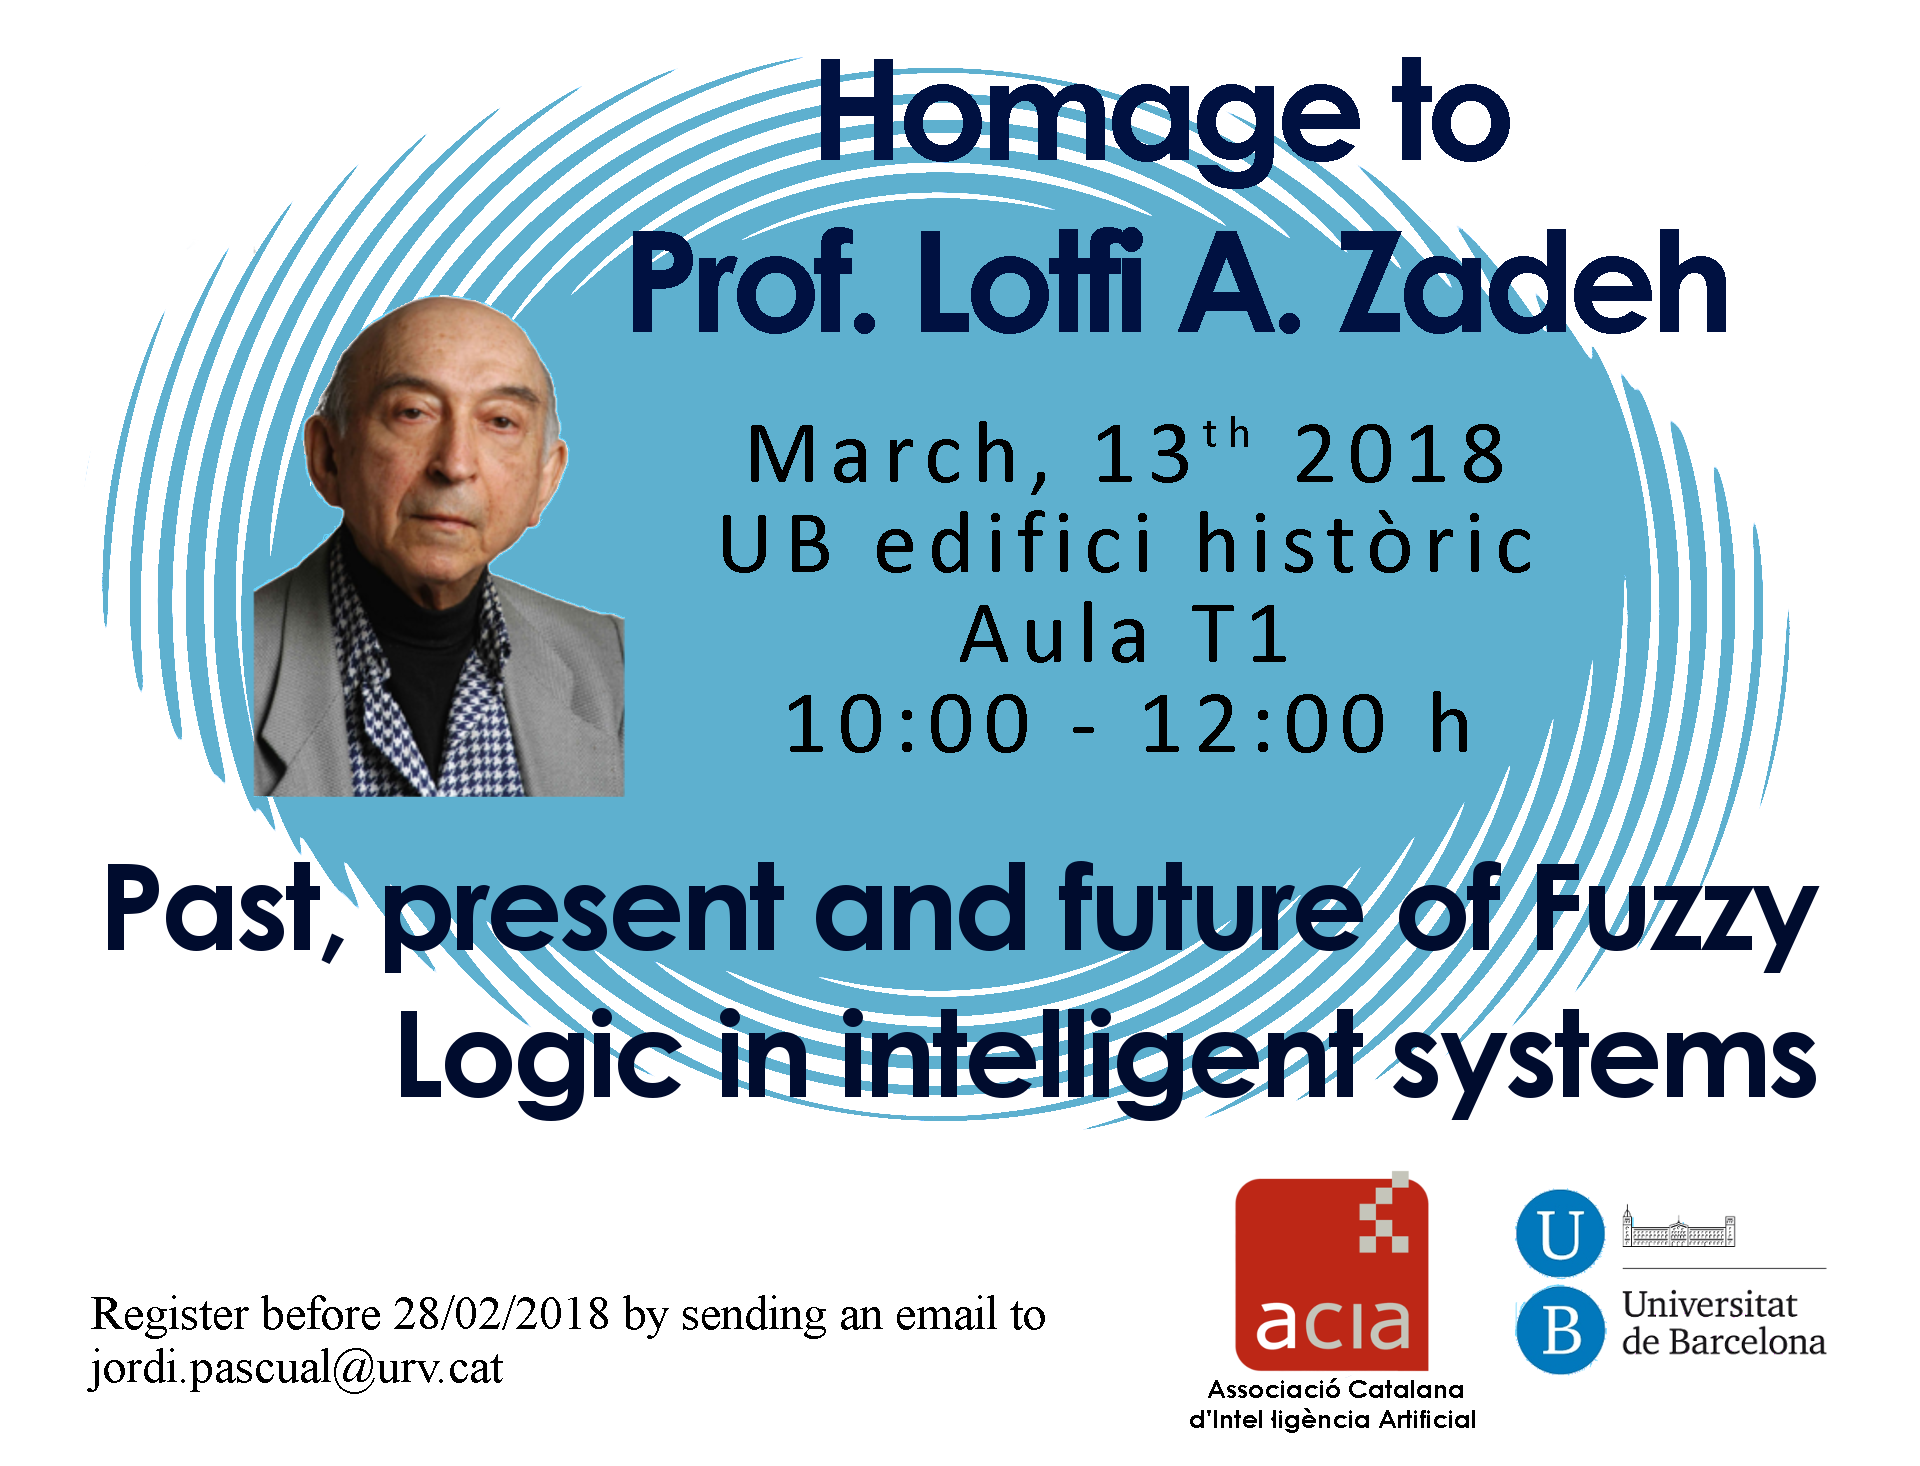 Homage to Lotfi Zadeh